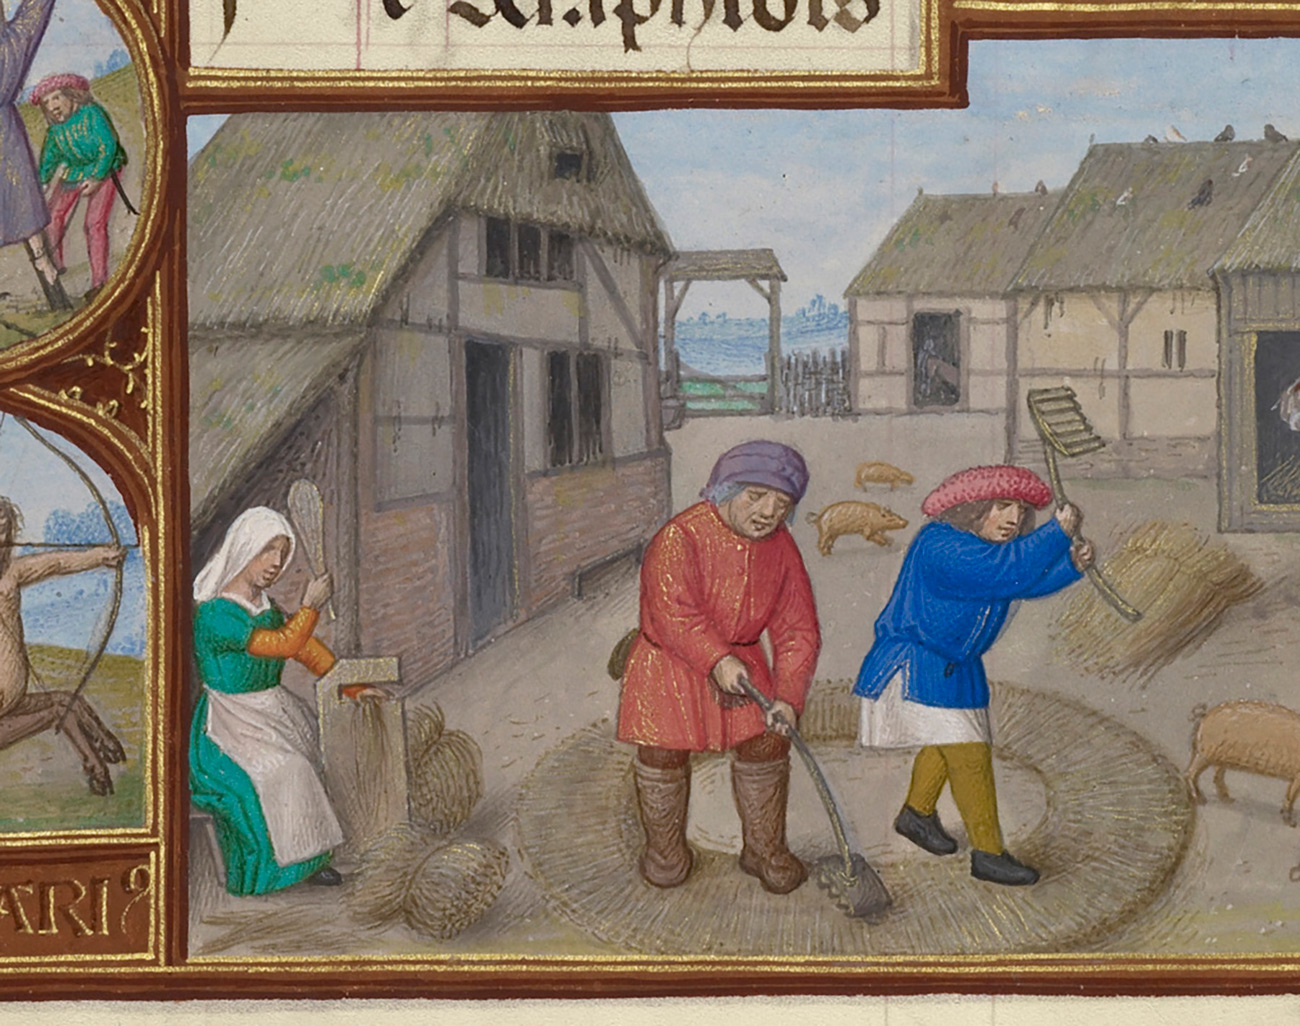 Two men and a woman thresh wheat in a courtyard surrounded by thatched roof homes